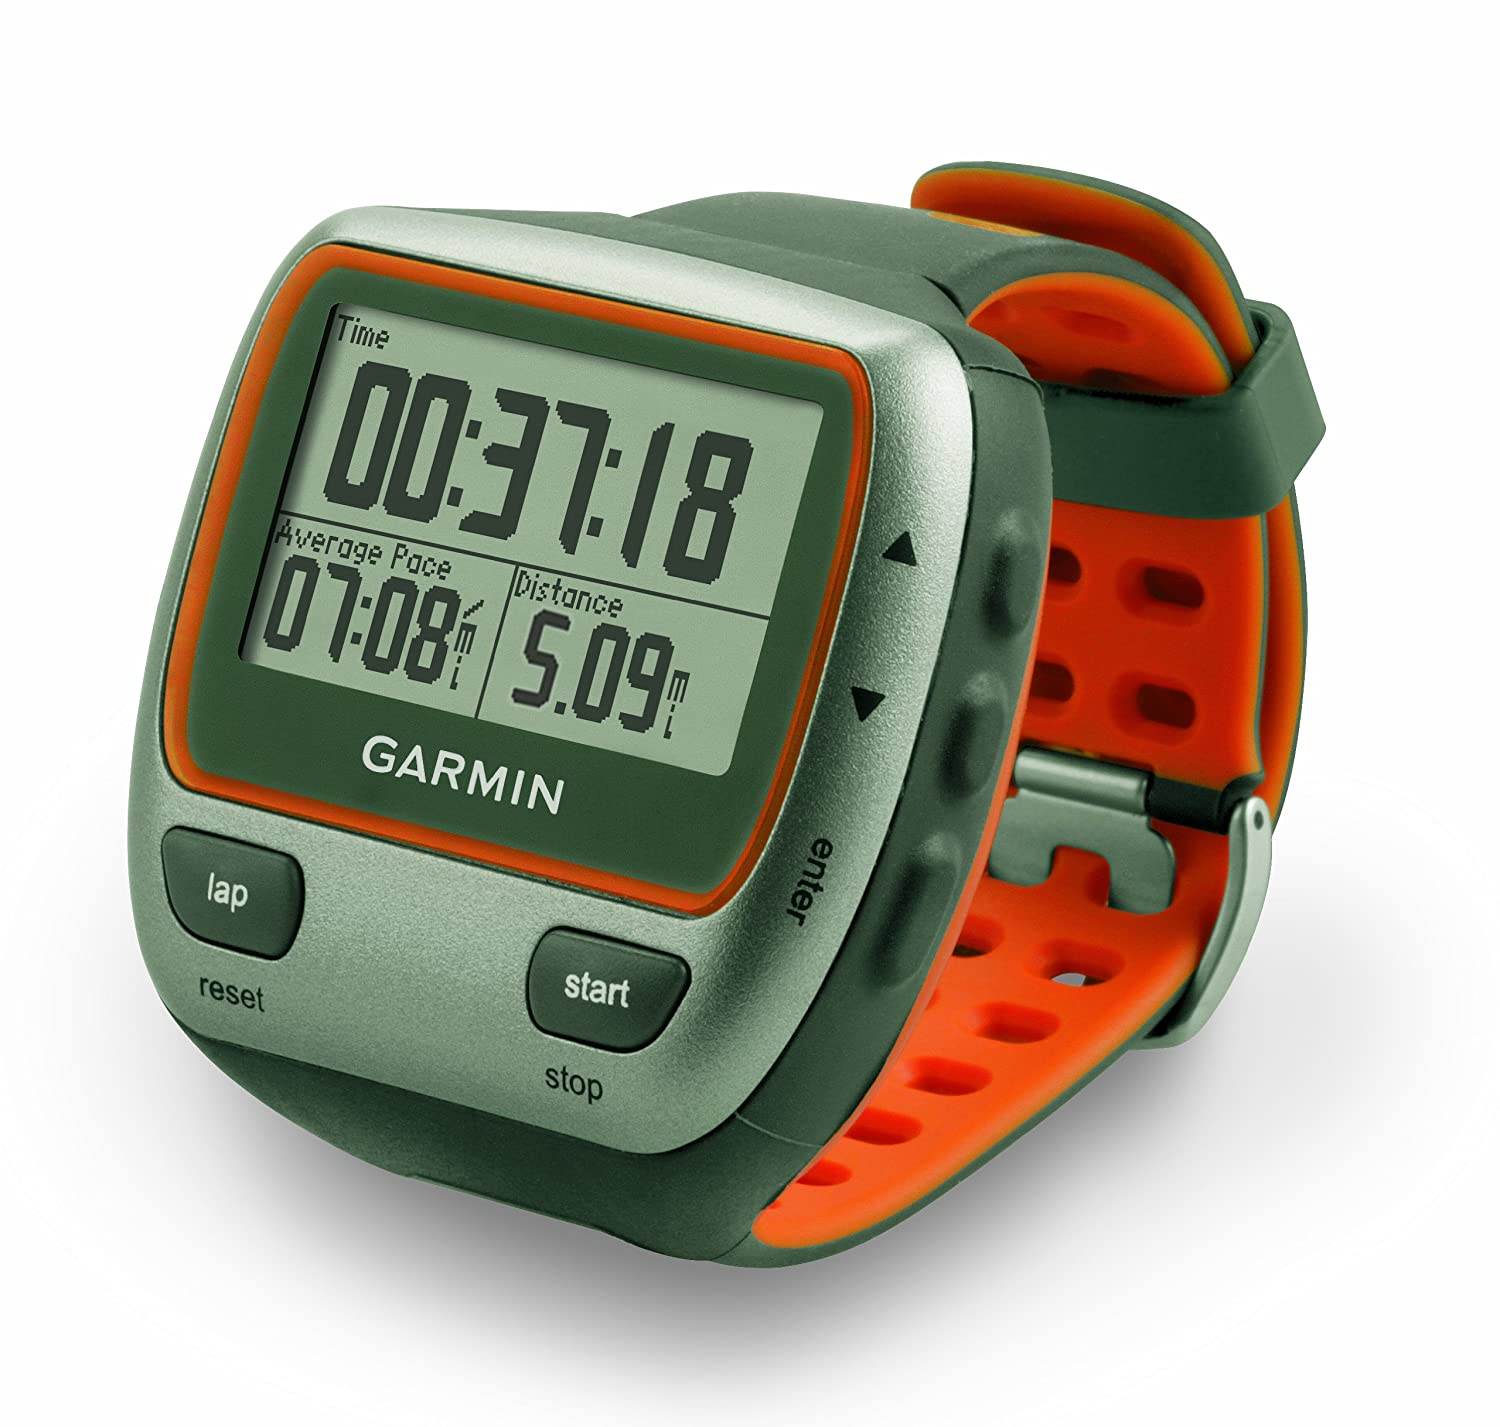 smartwatch outdoor sport garmin built europe review recmap in comparison gps best with epix watch mapping watches